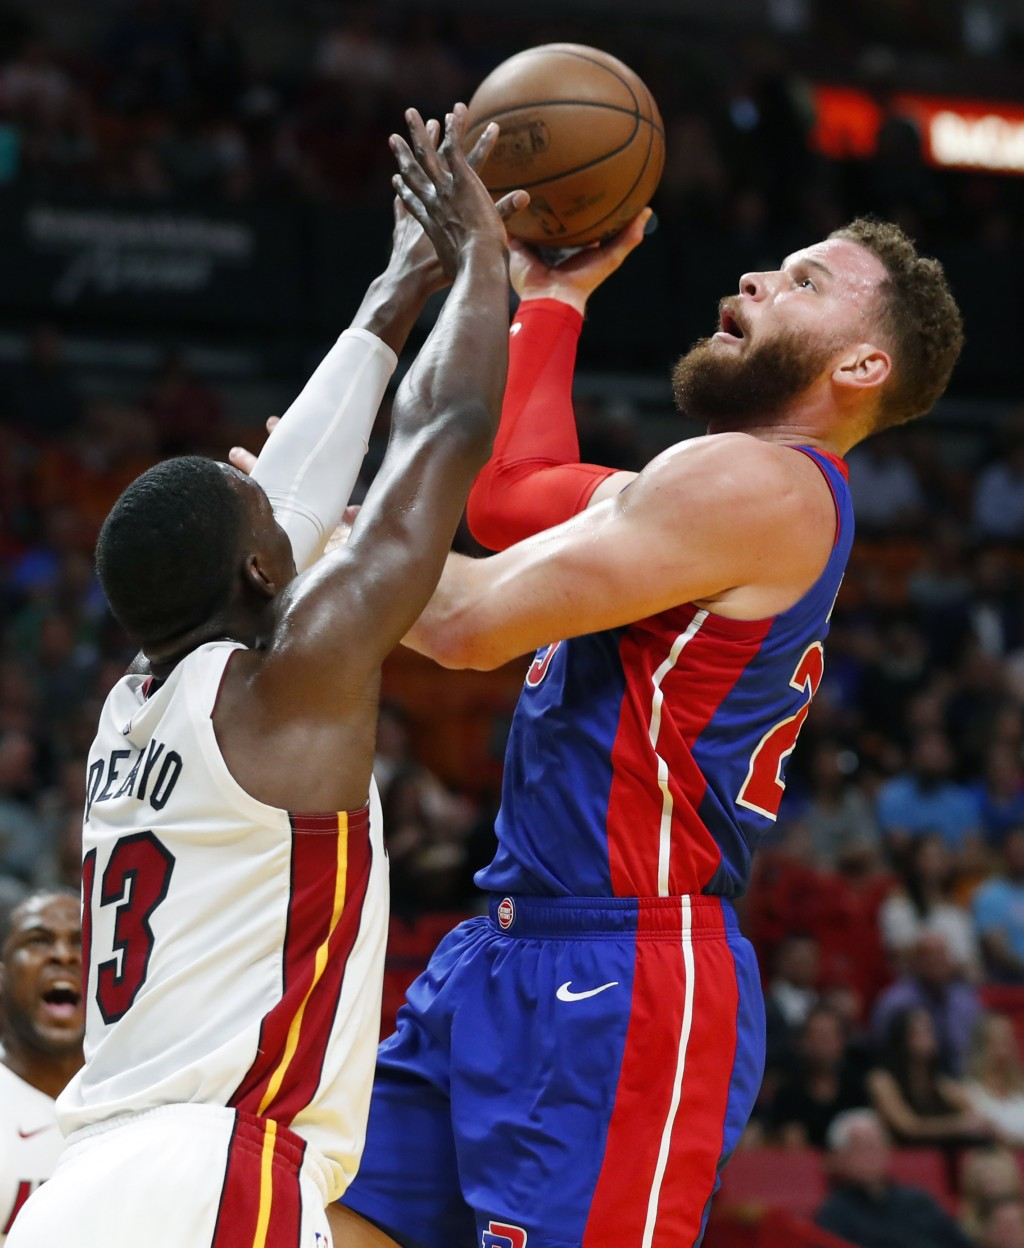 Detroit Pistons forward Blake Griffin (23) shoots against Miami Heat center Bam Adebayo (13) during the first half of an NBA basketball game, Wednesda